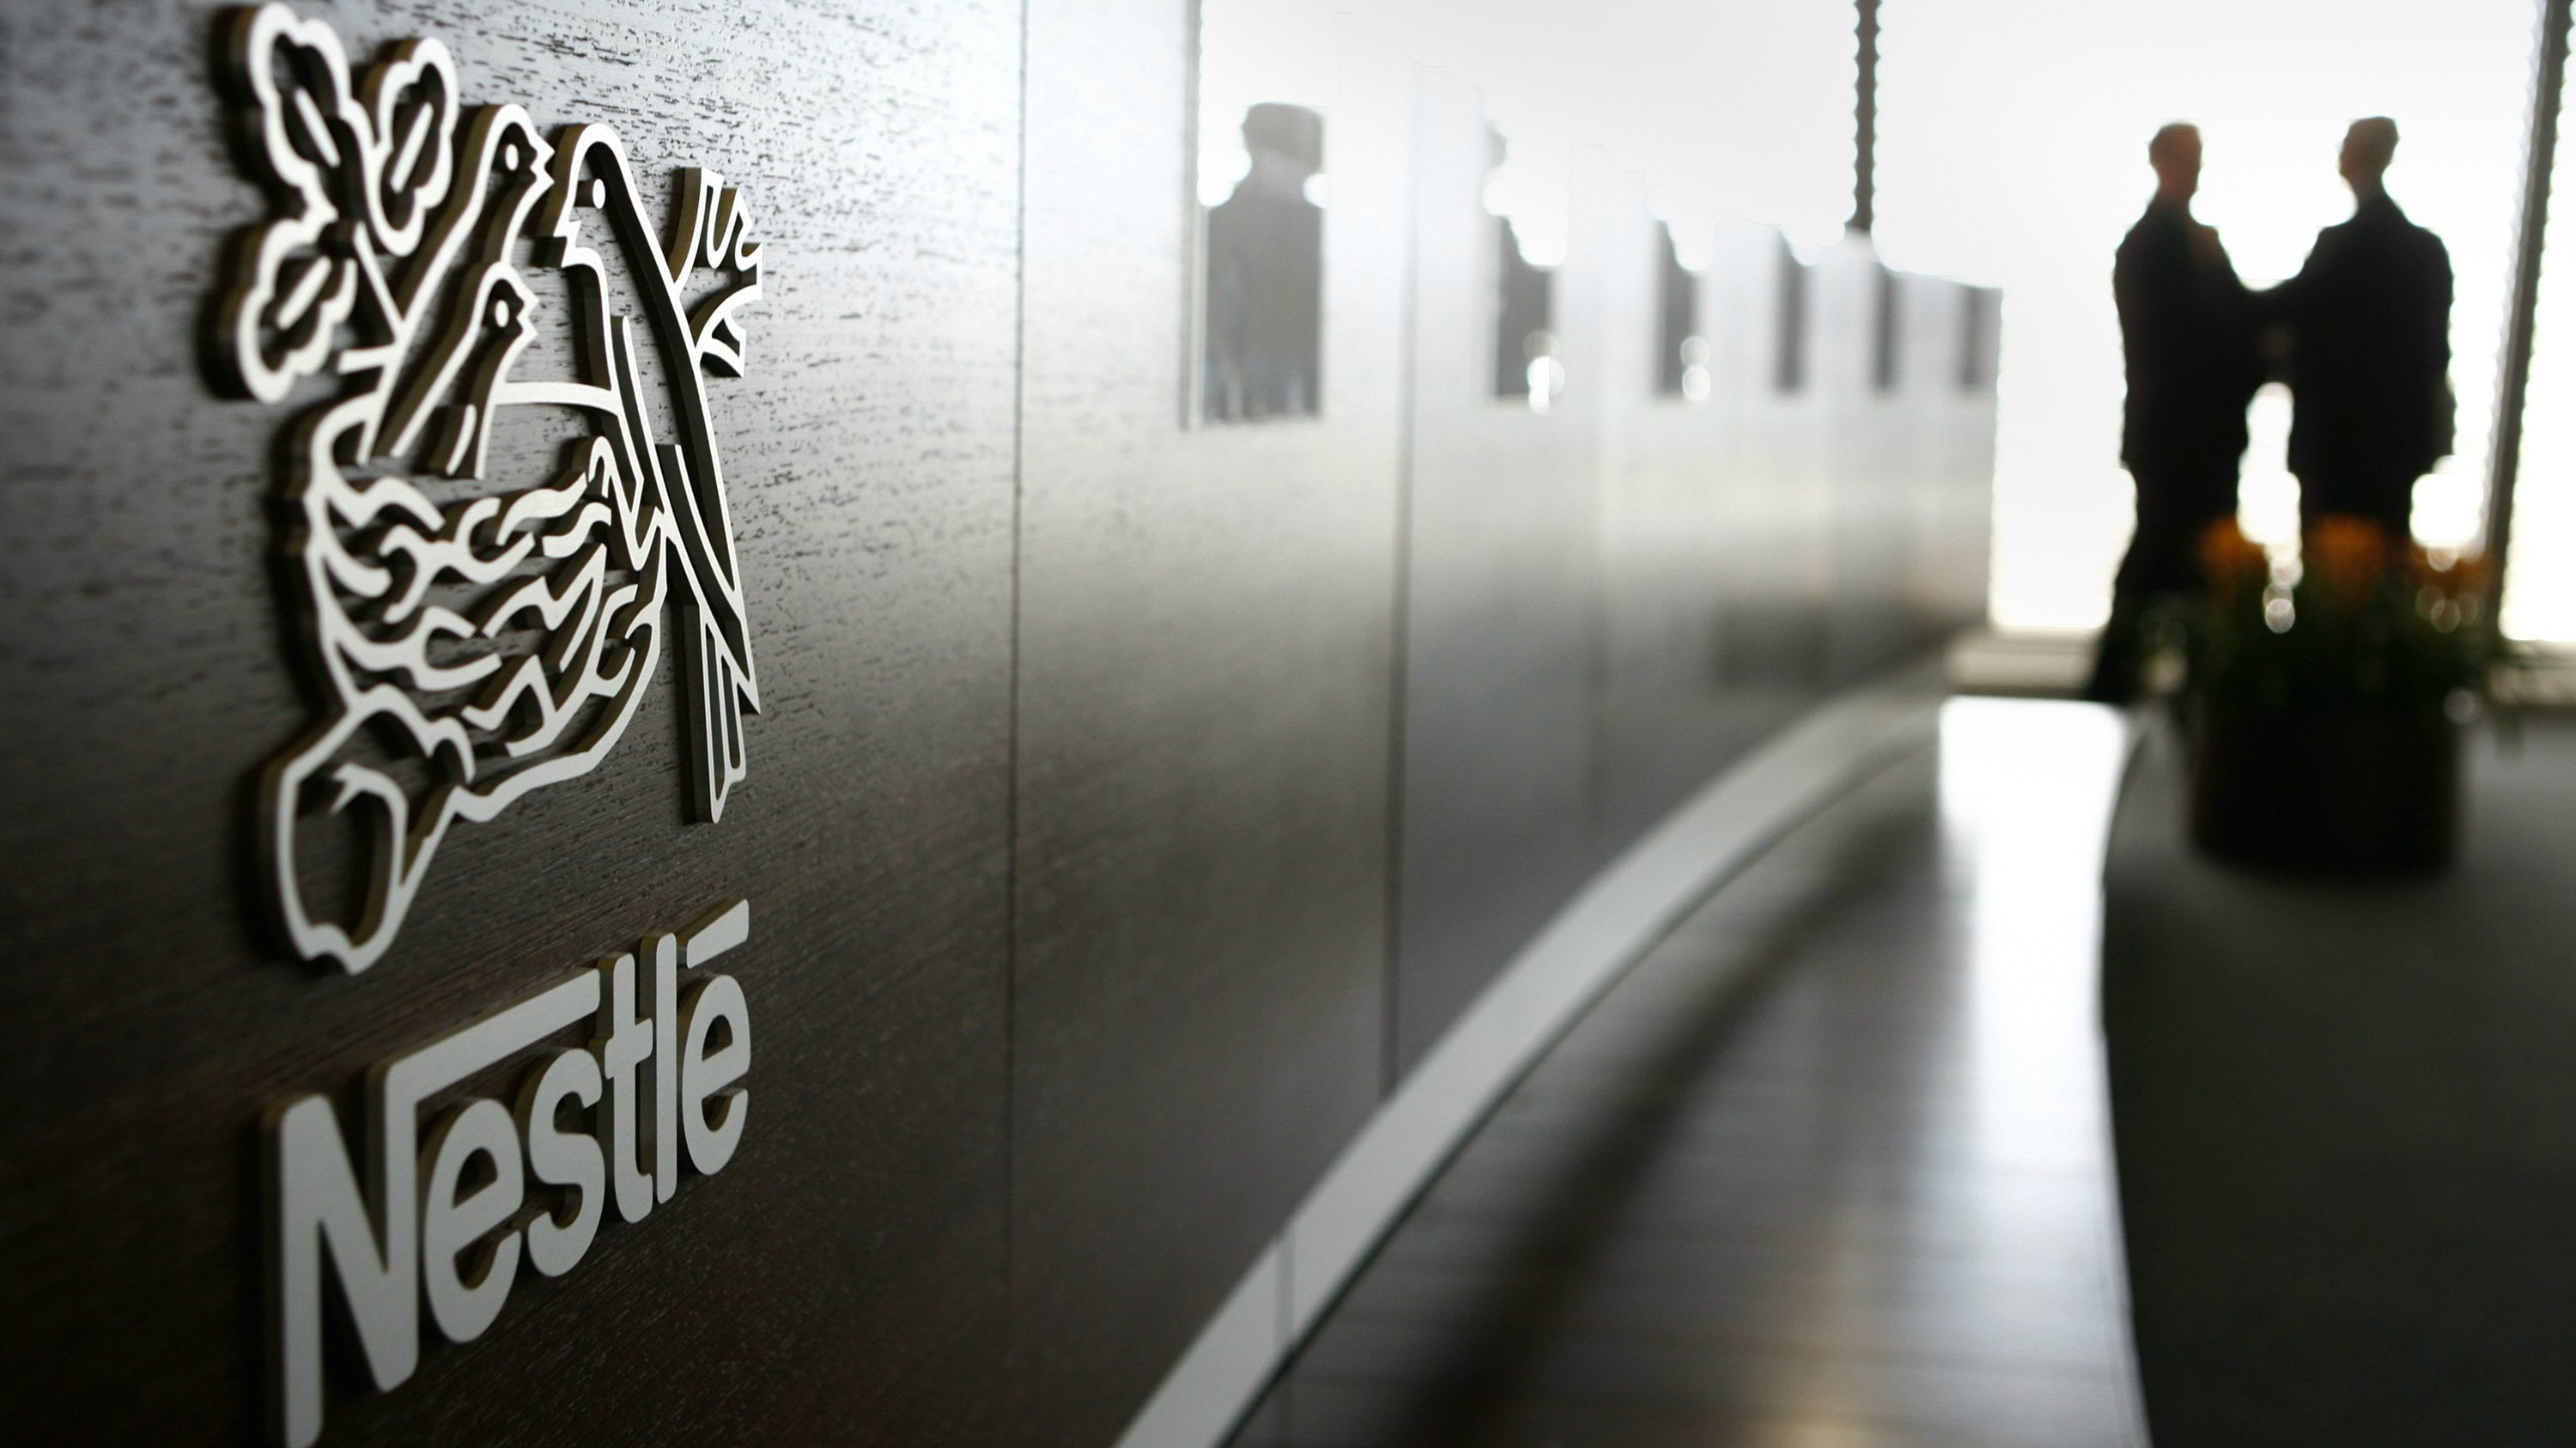 A photograph of the inside of a Nestle office